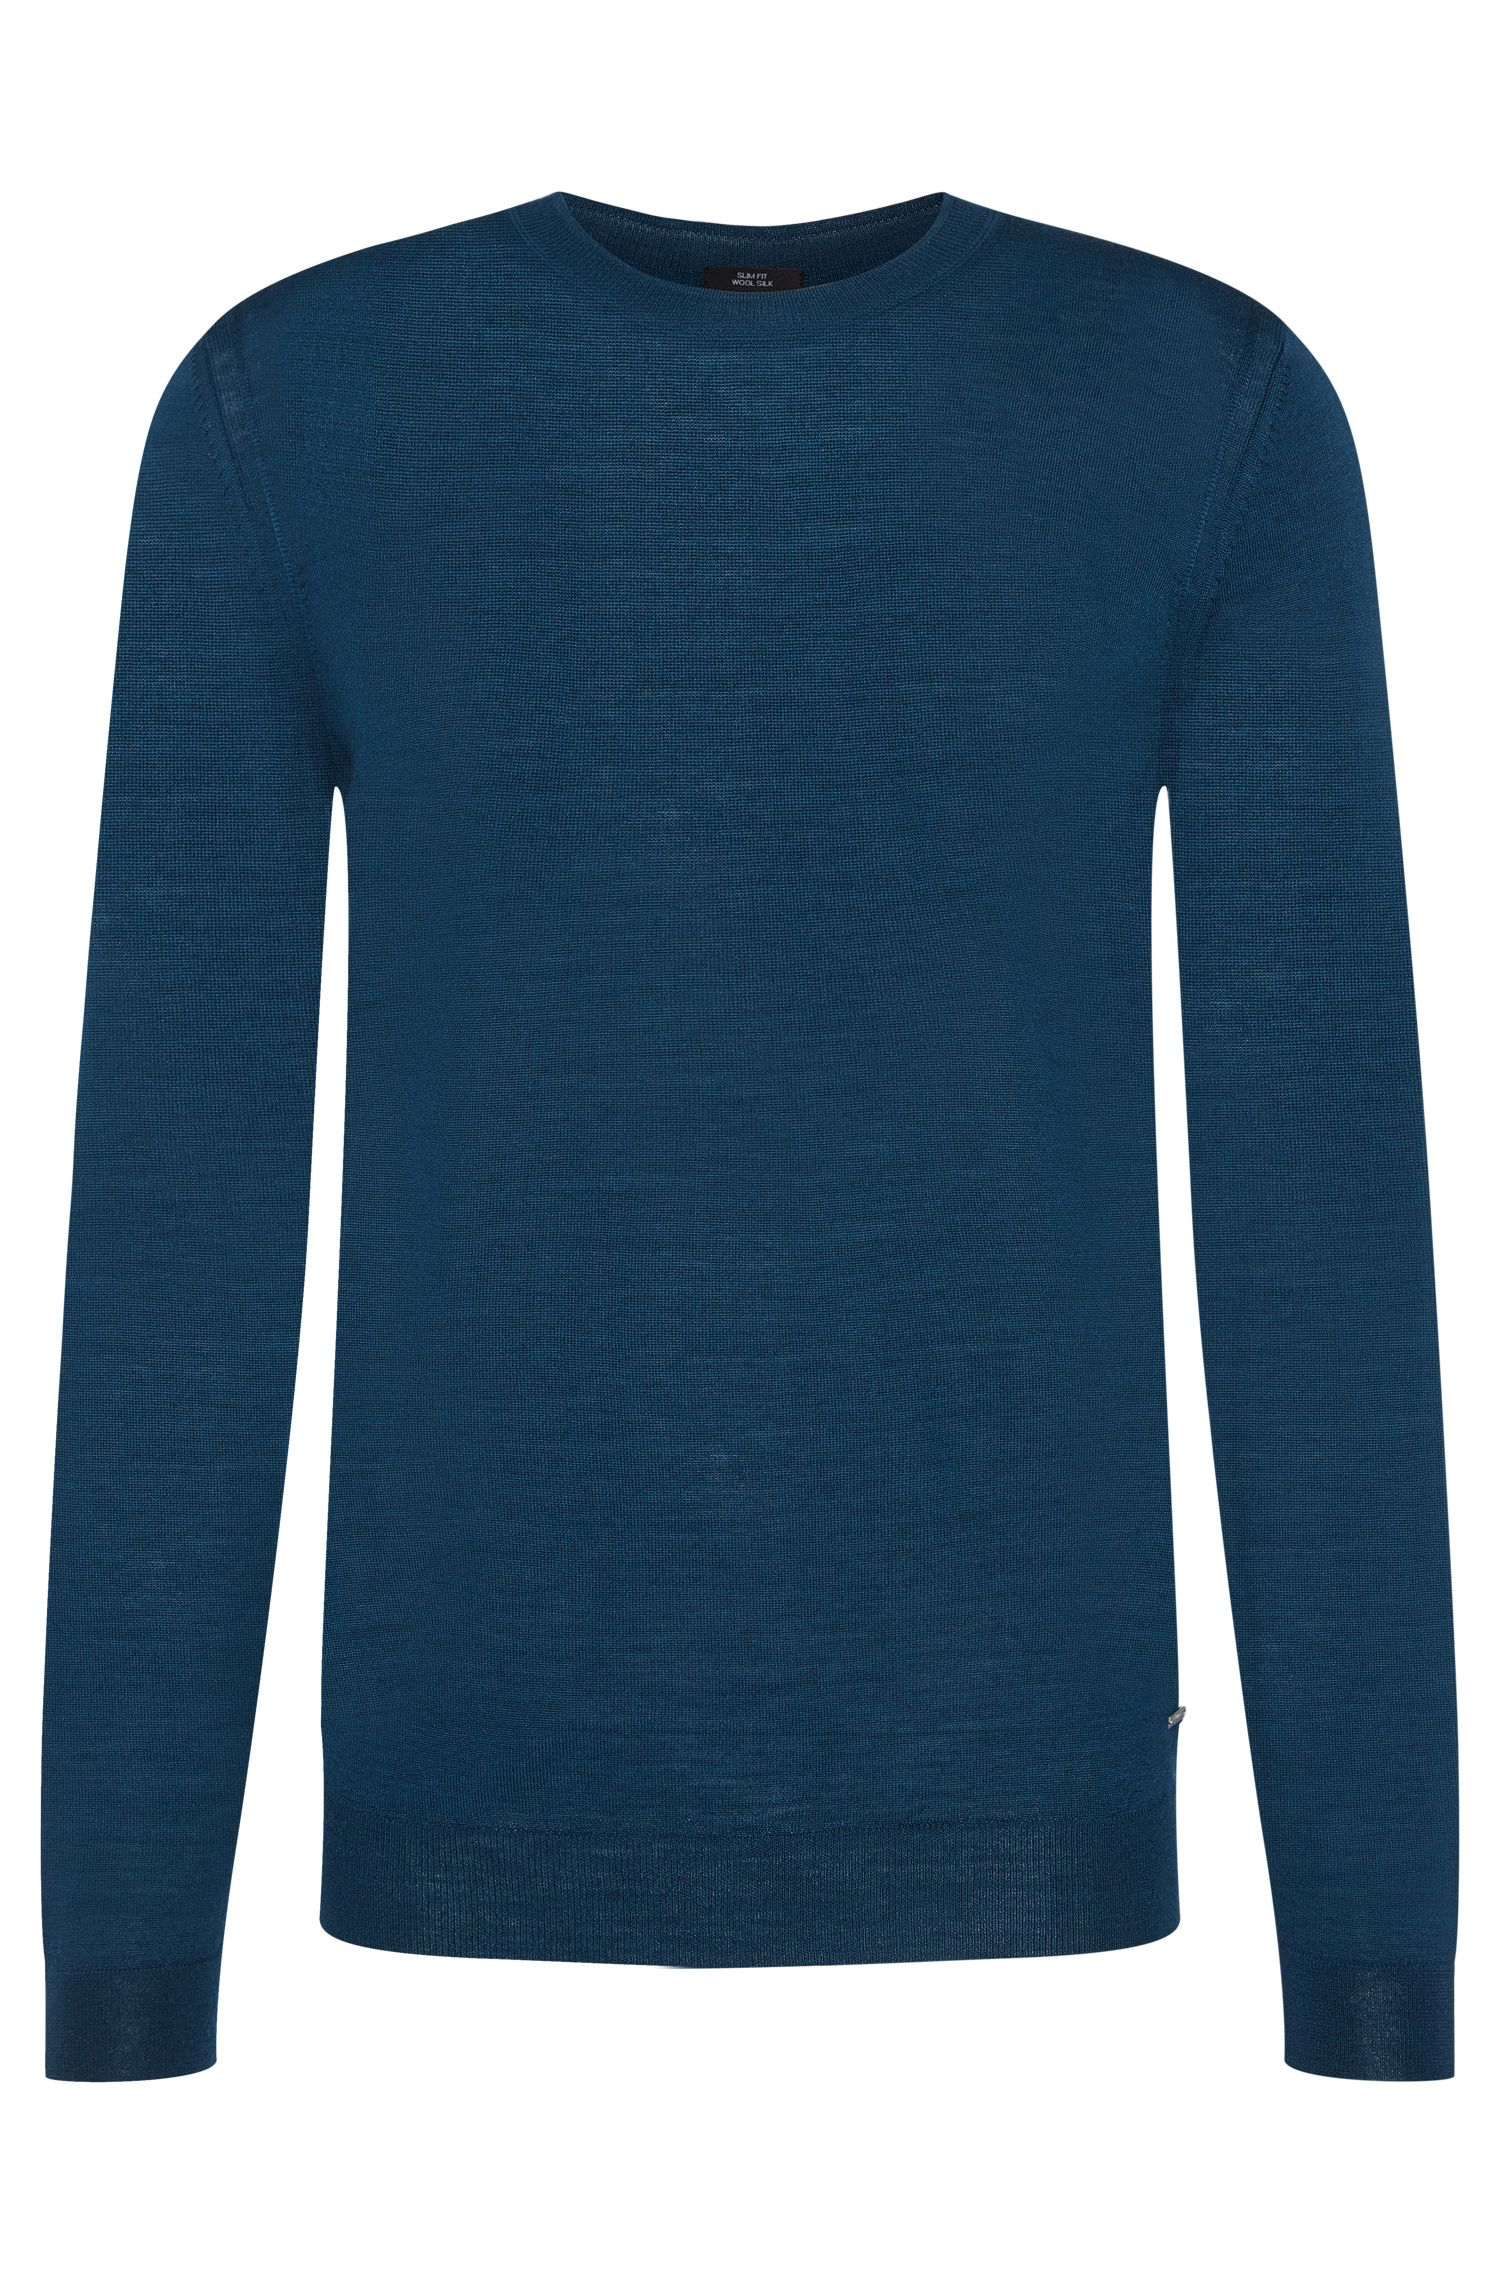 Unifarbener Slim-Fit Tailored Pullover aus Schurwoll-Mix mit Kaschmir: 'T-Ion'